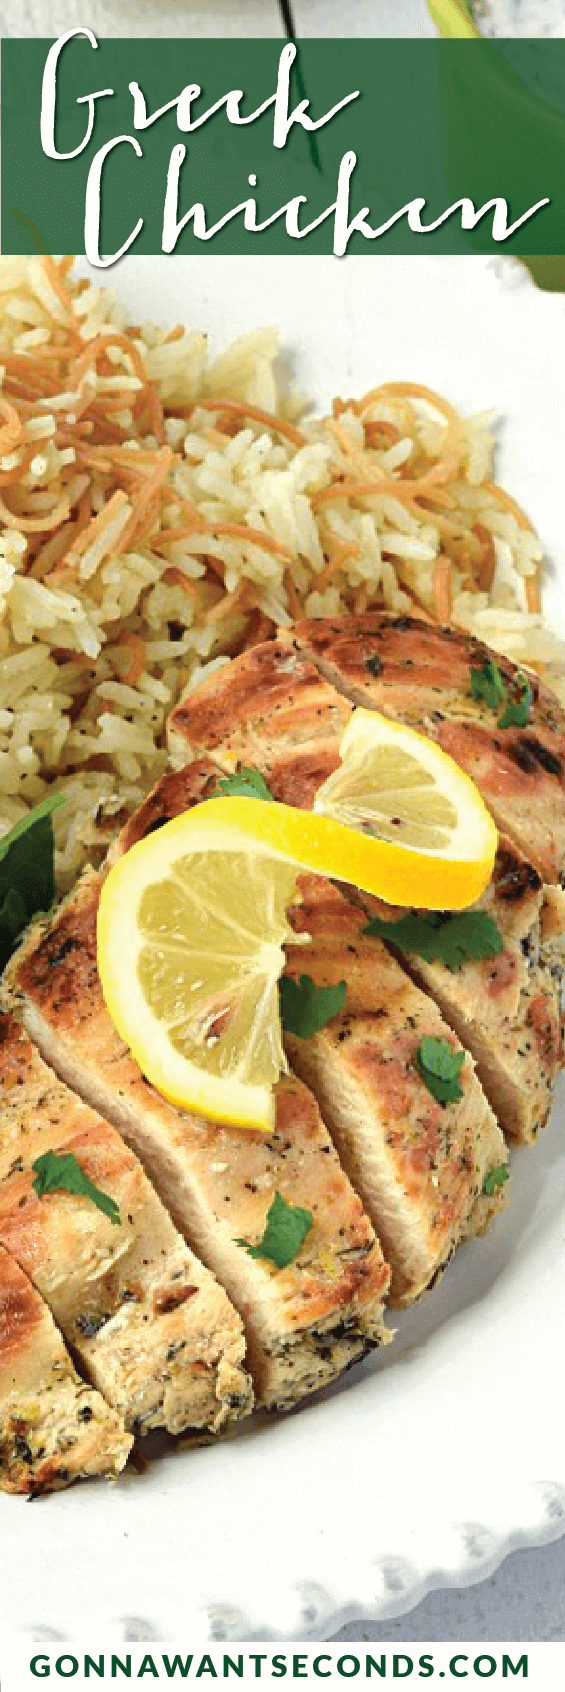 Delicious Greek Chicken. This recipe is quick and easy to put together and produce a healthy, fabulously flavored chicken. The hardest part of the recipe is planning ahead for the marinade time! This is a recipe you'll make again and again!